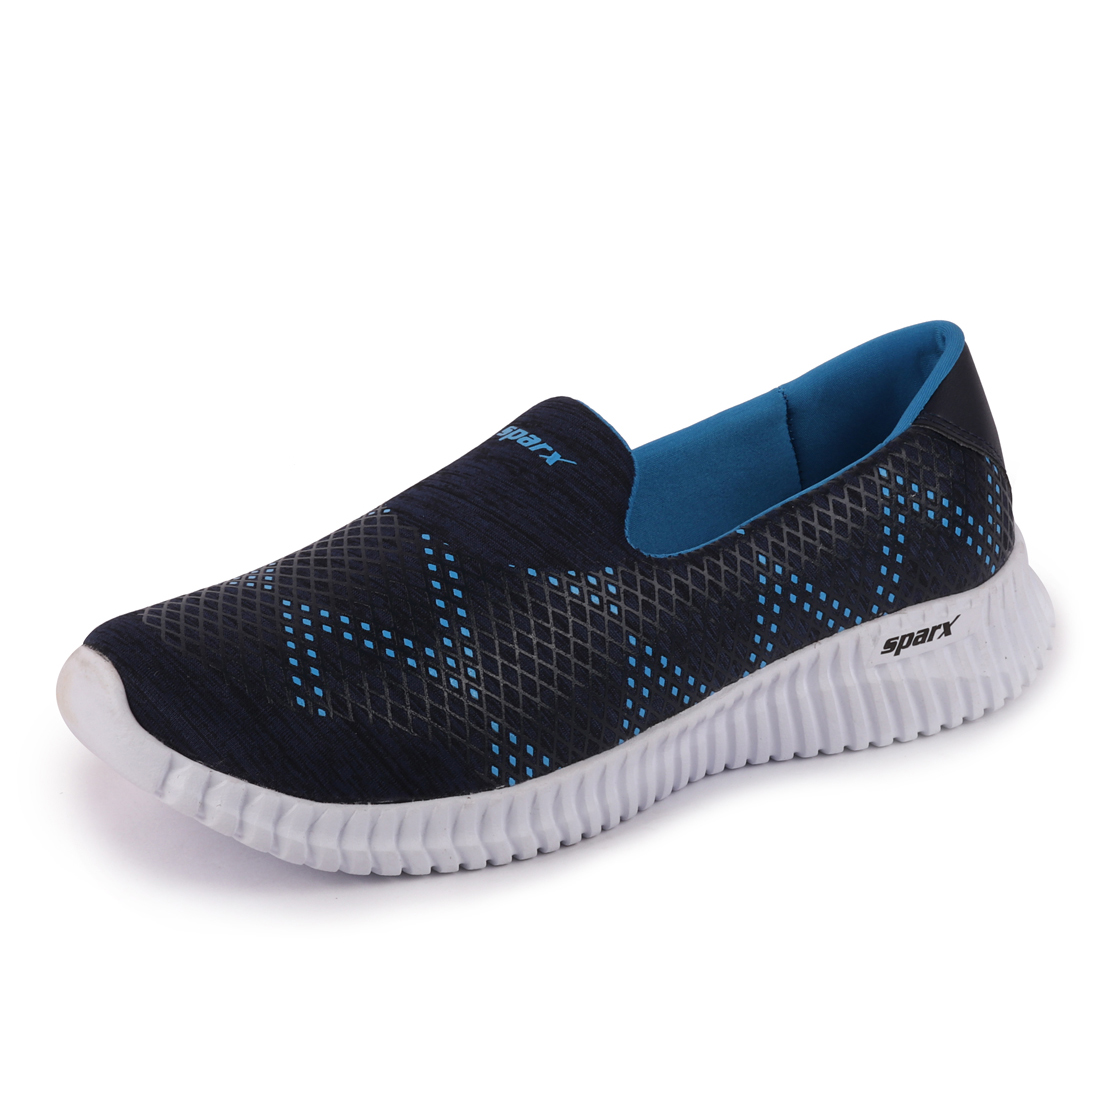 Sparx Womens Navy Blue Running Shoes